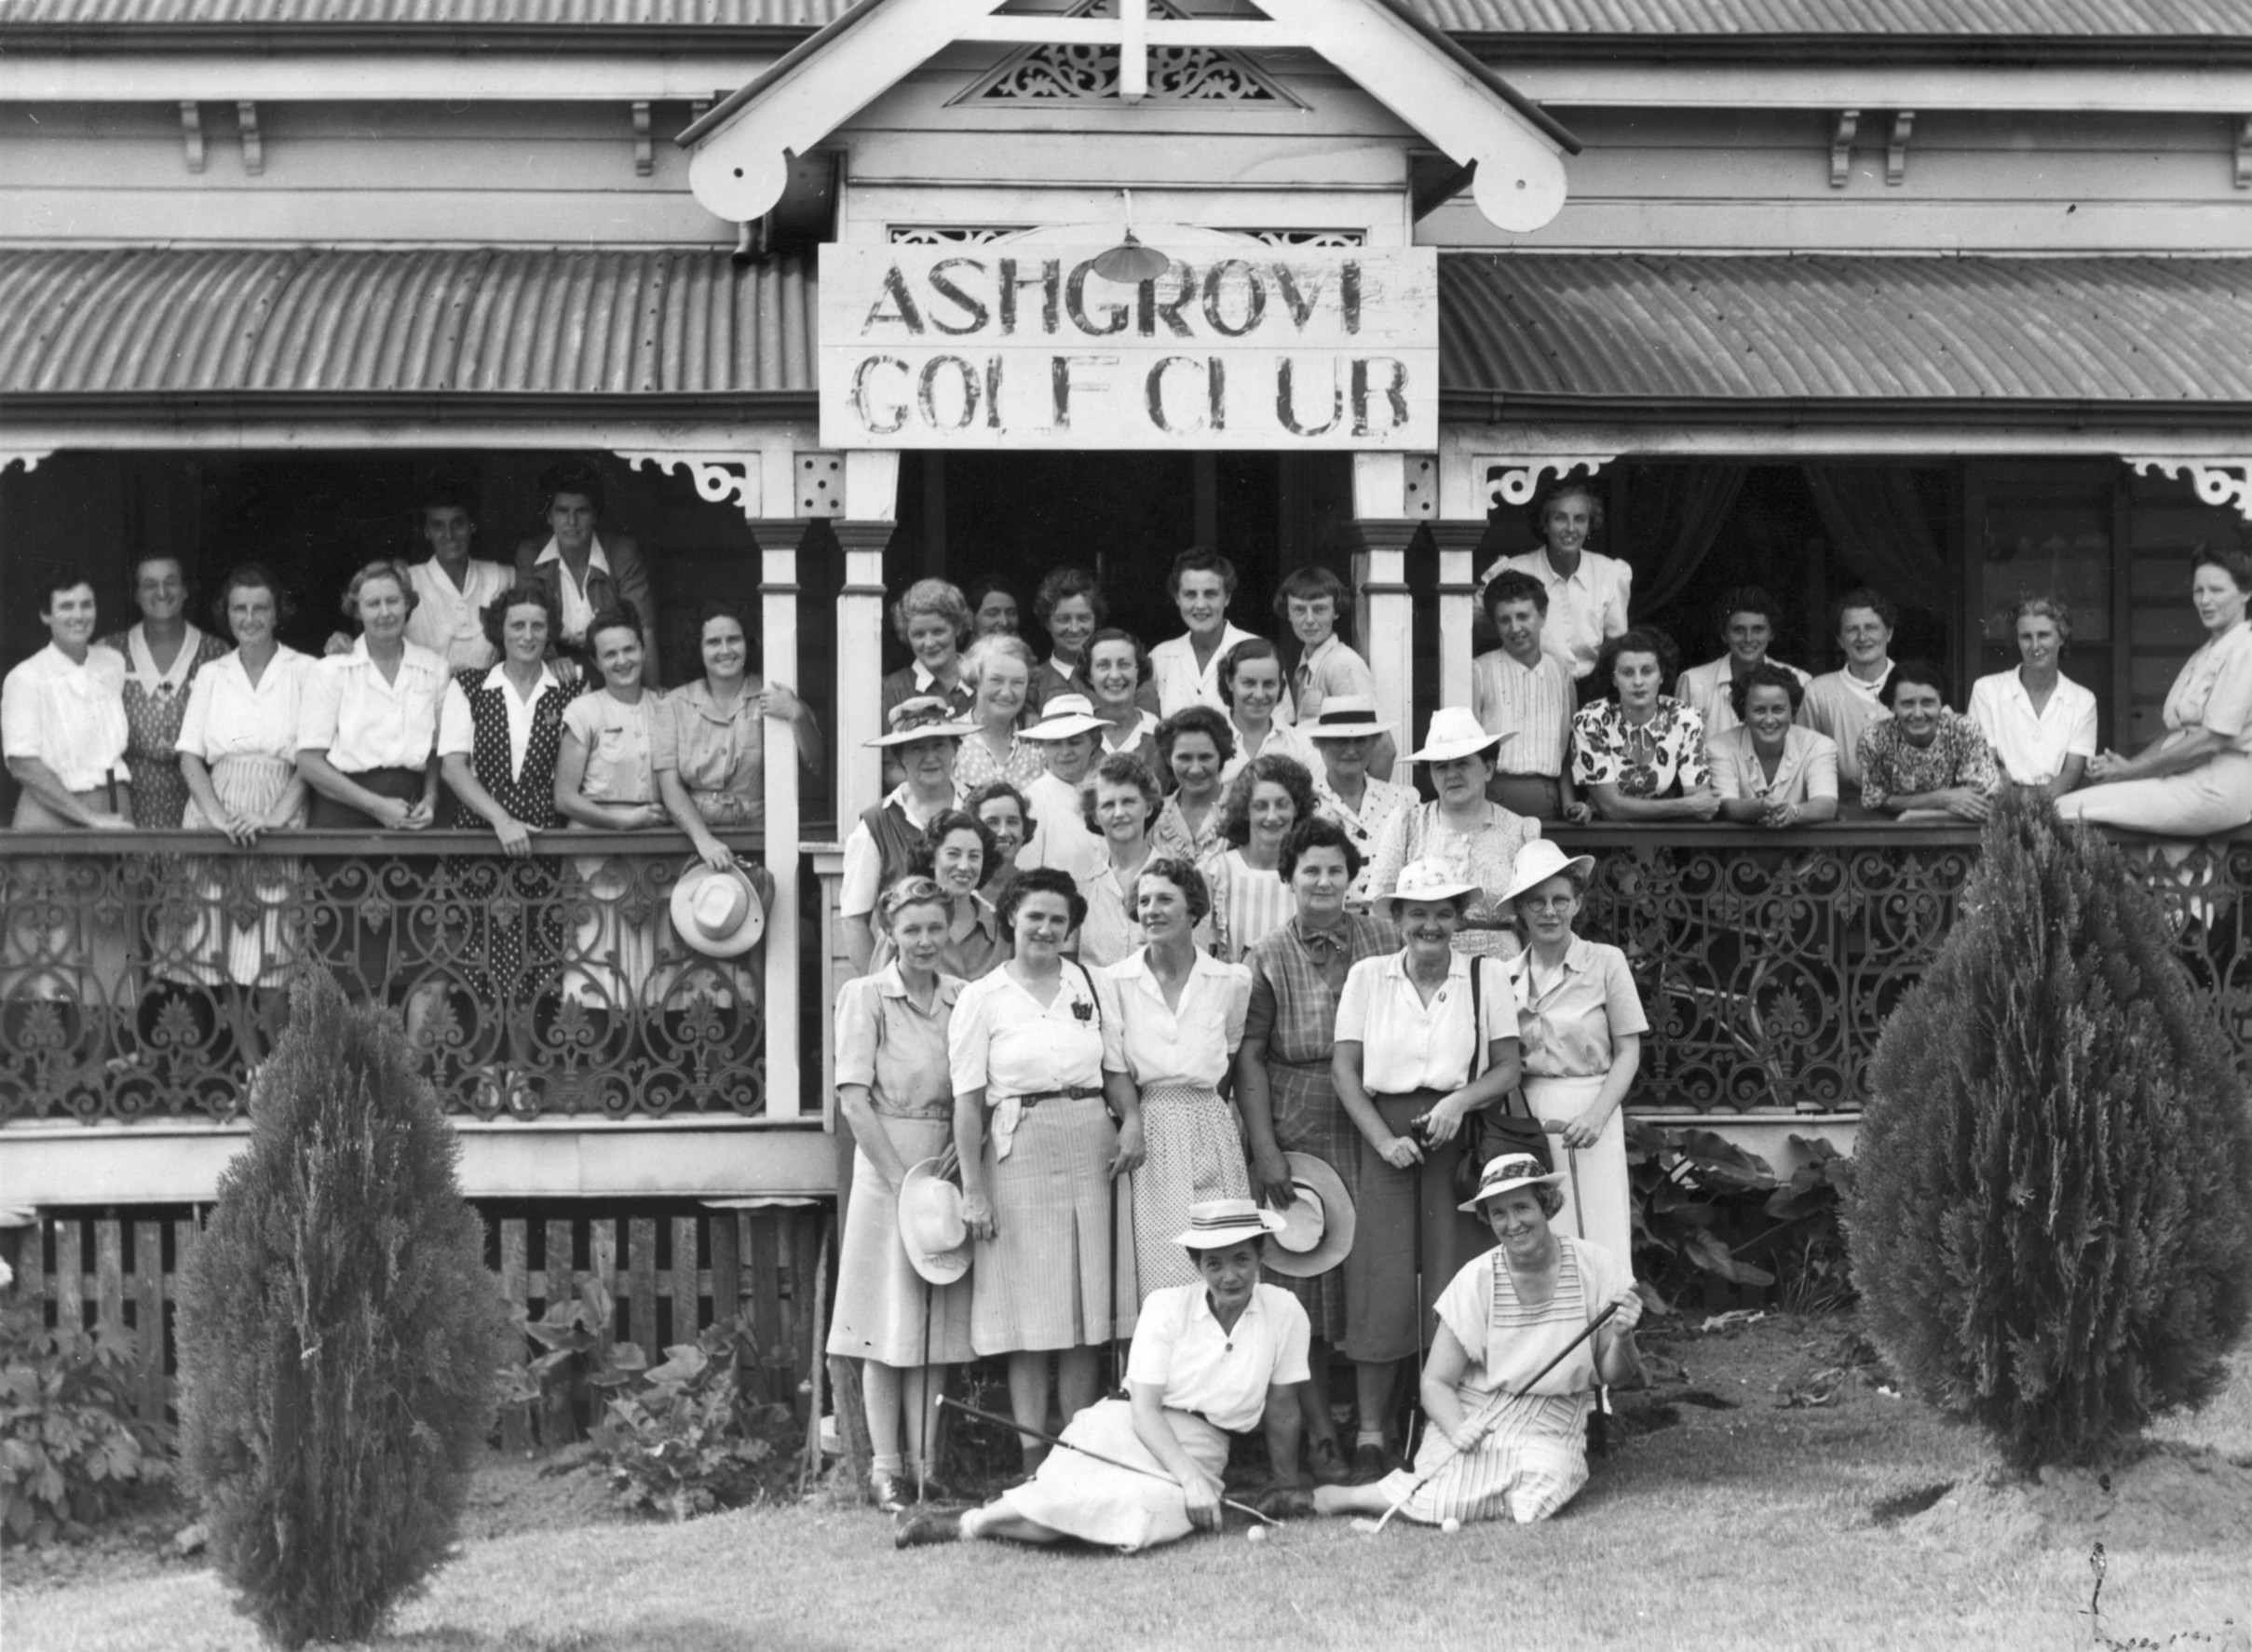 AS9 Ashgrove Golf Club Ladies